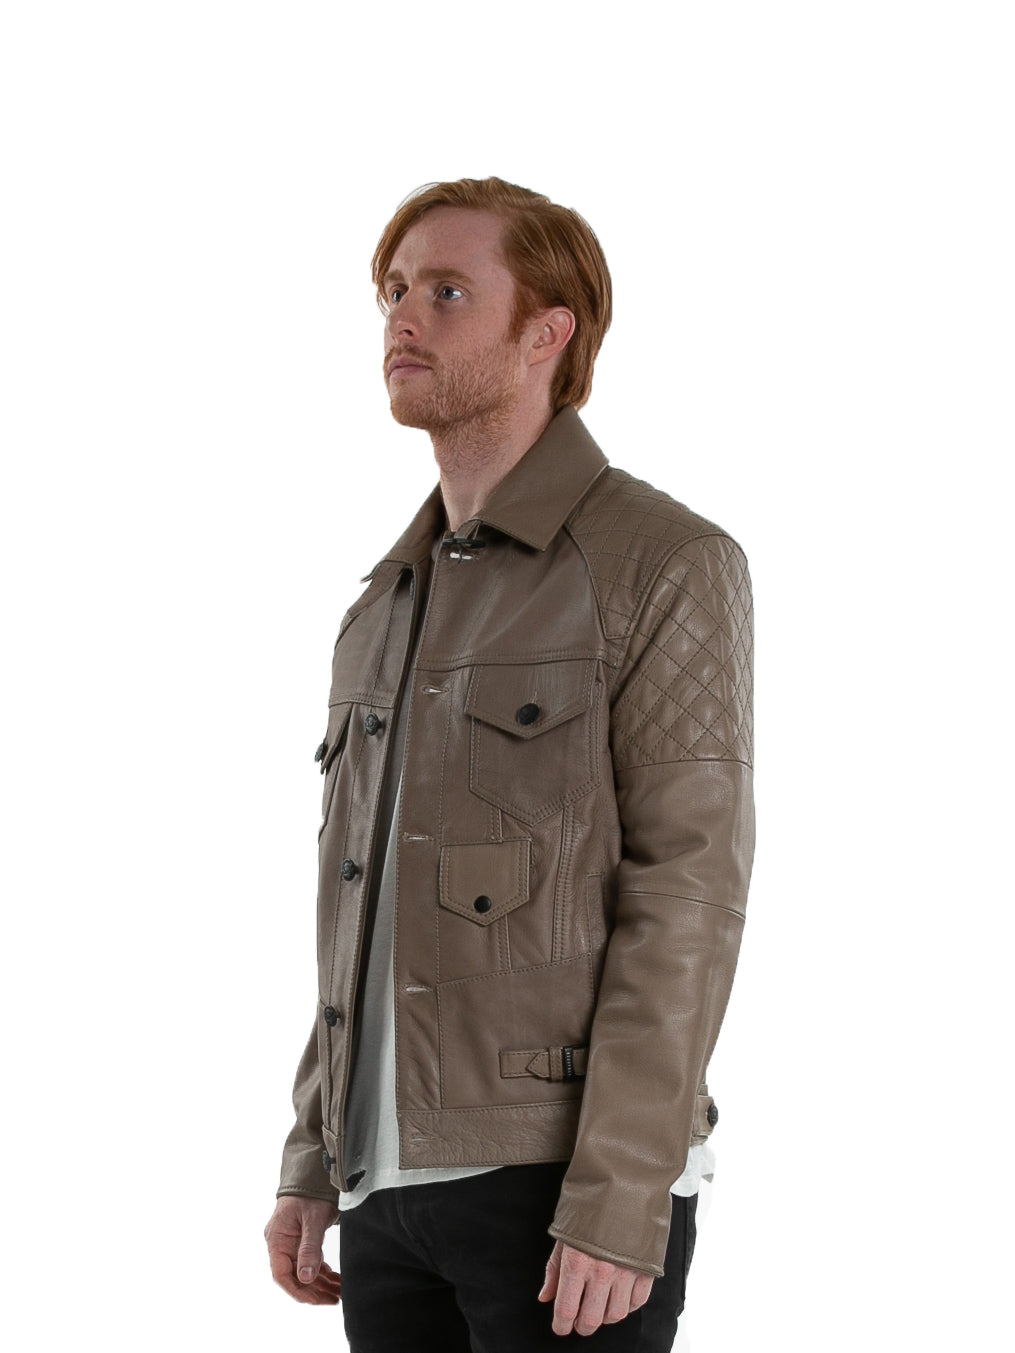 Side of male model wearing Grindstone leather jacket